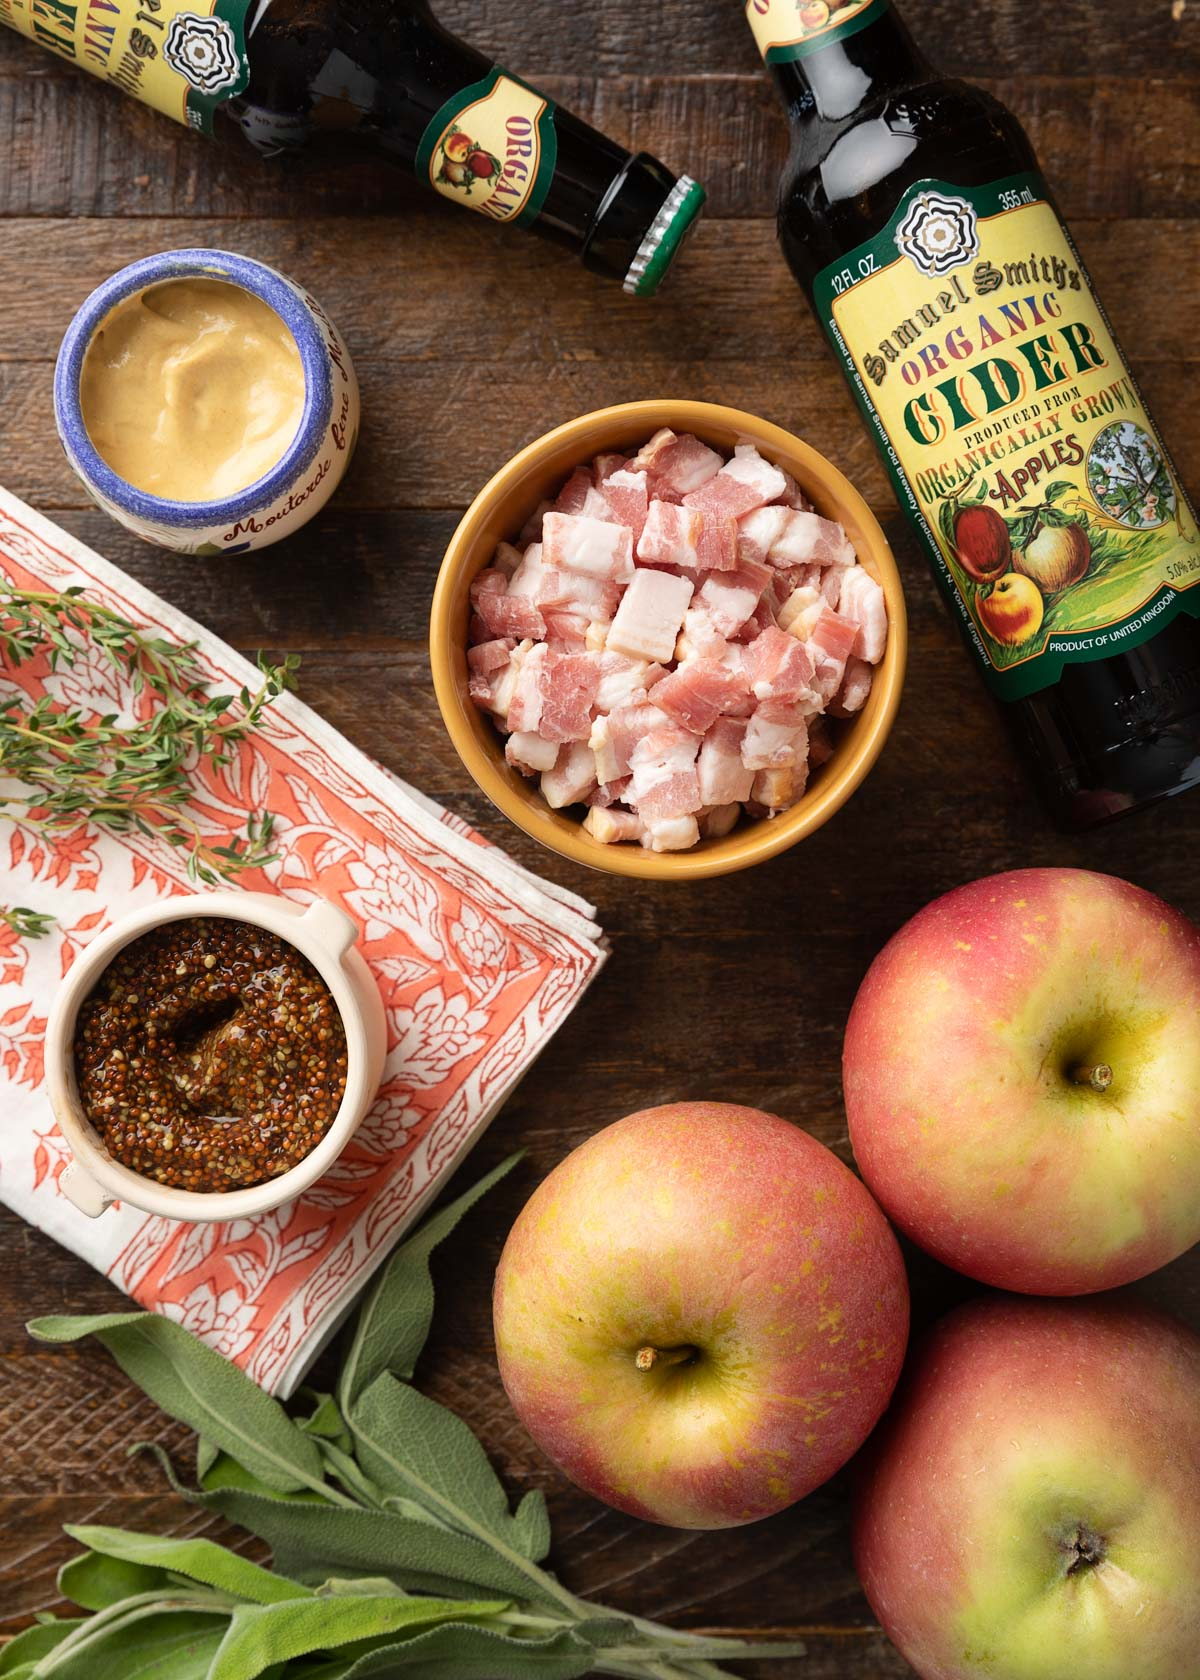 overhead viewe of bottles of hard cider, crocks of Dijon and grainy mustard, chopped bacon, apples, and herbs on a wood board